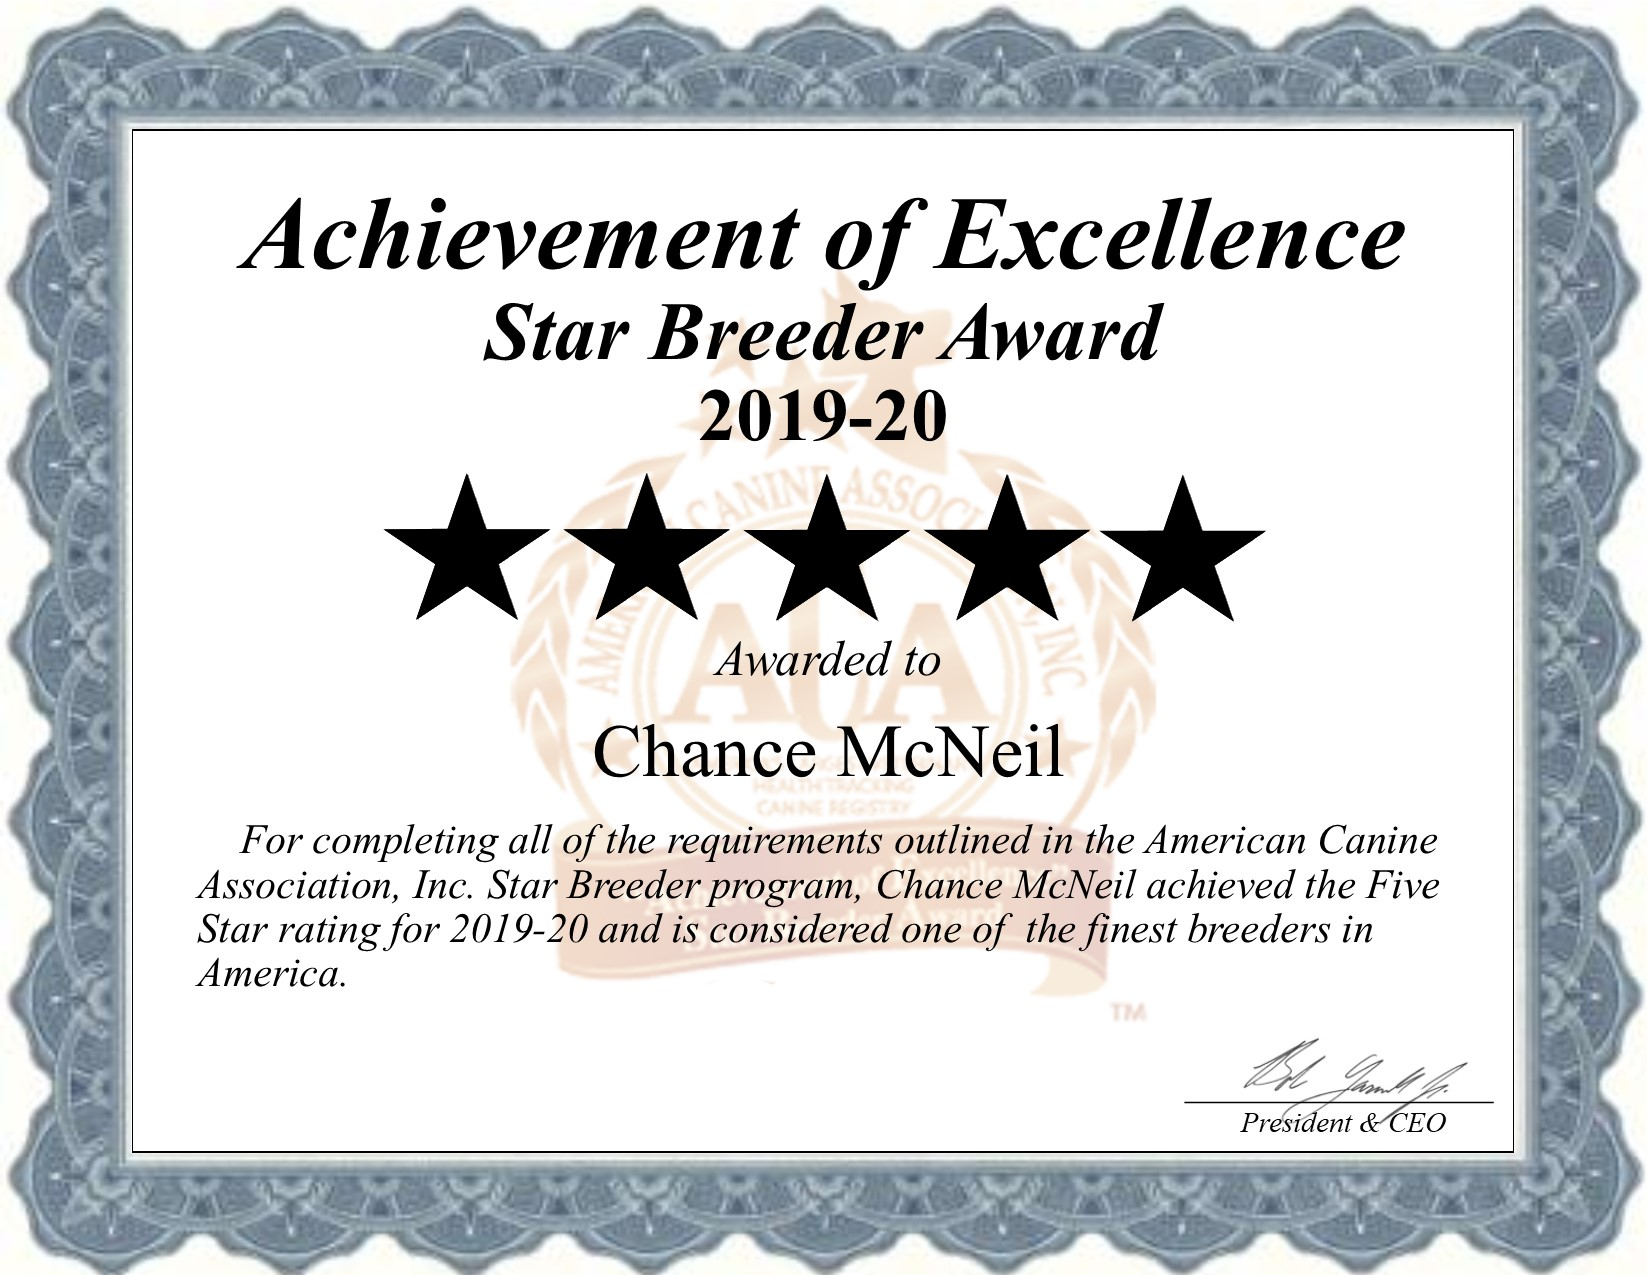 chance, mcneil, dog, breeder, certificate, star, chance-mcneil, dog-breeder, harrisburg, sd, south-dakota, puppy, dog, kennels, mill, puppymill, usda, 5-star, certificate, frenchies, bulldogs, ACA, registered